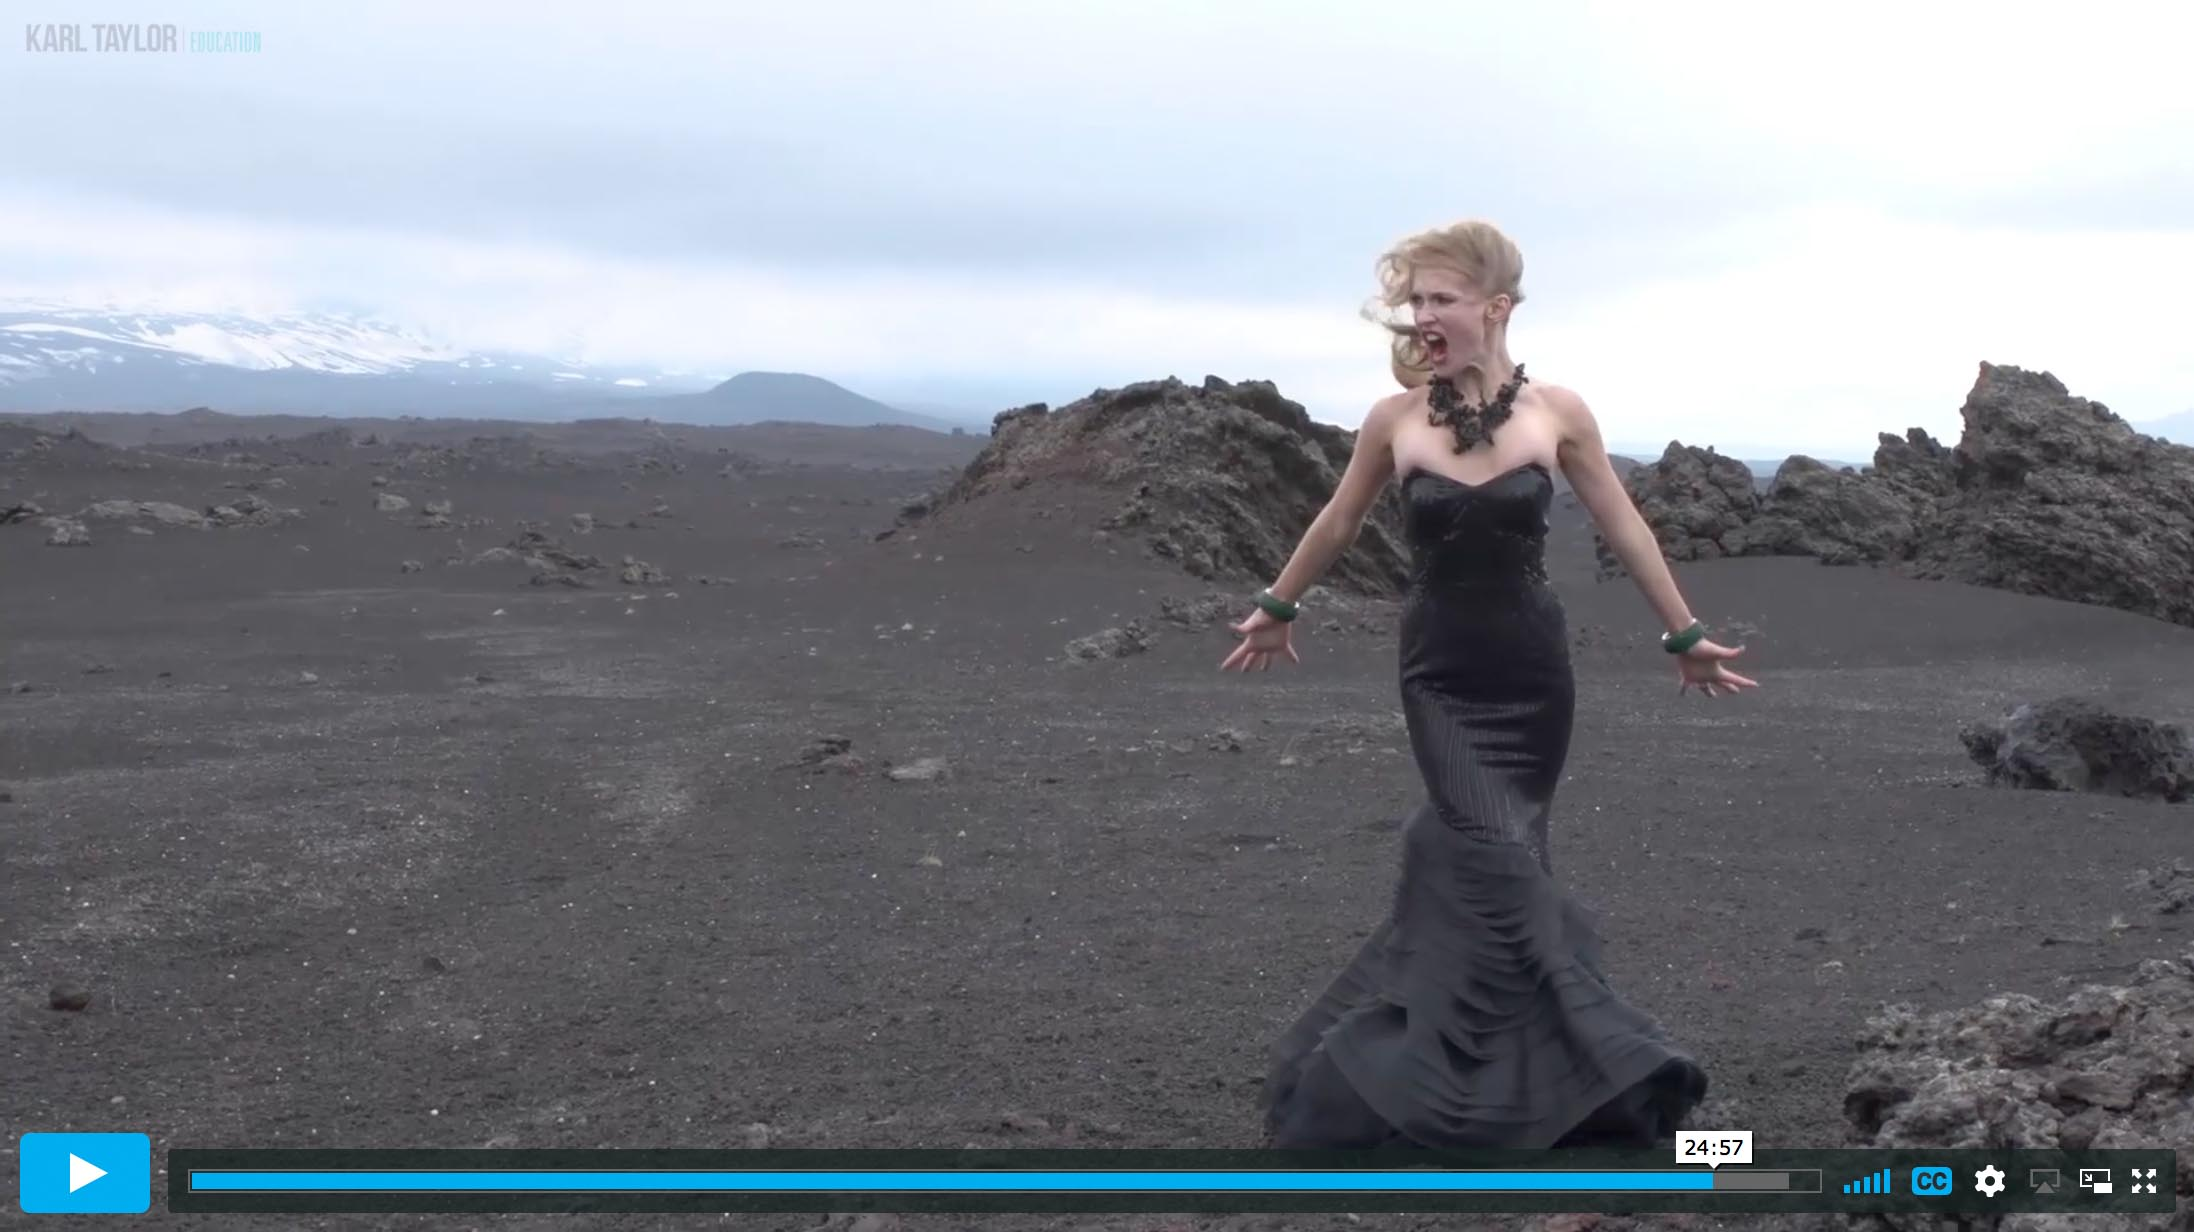 Dramatic fashion shoot in a surreal landscape